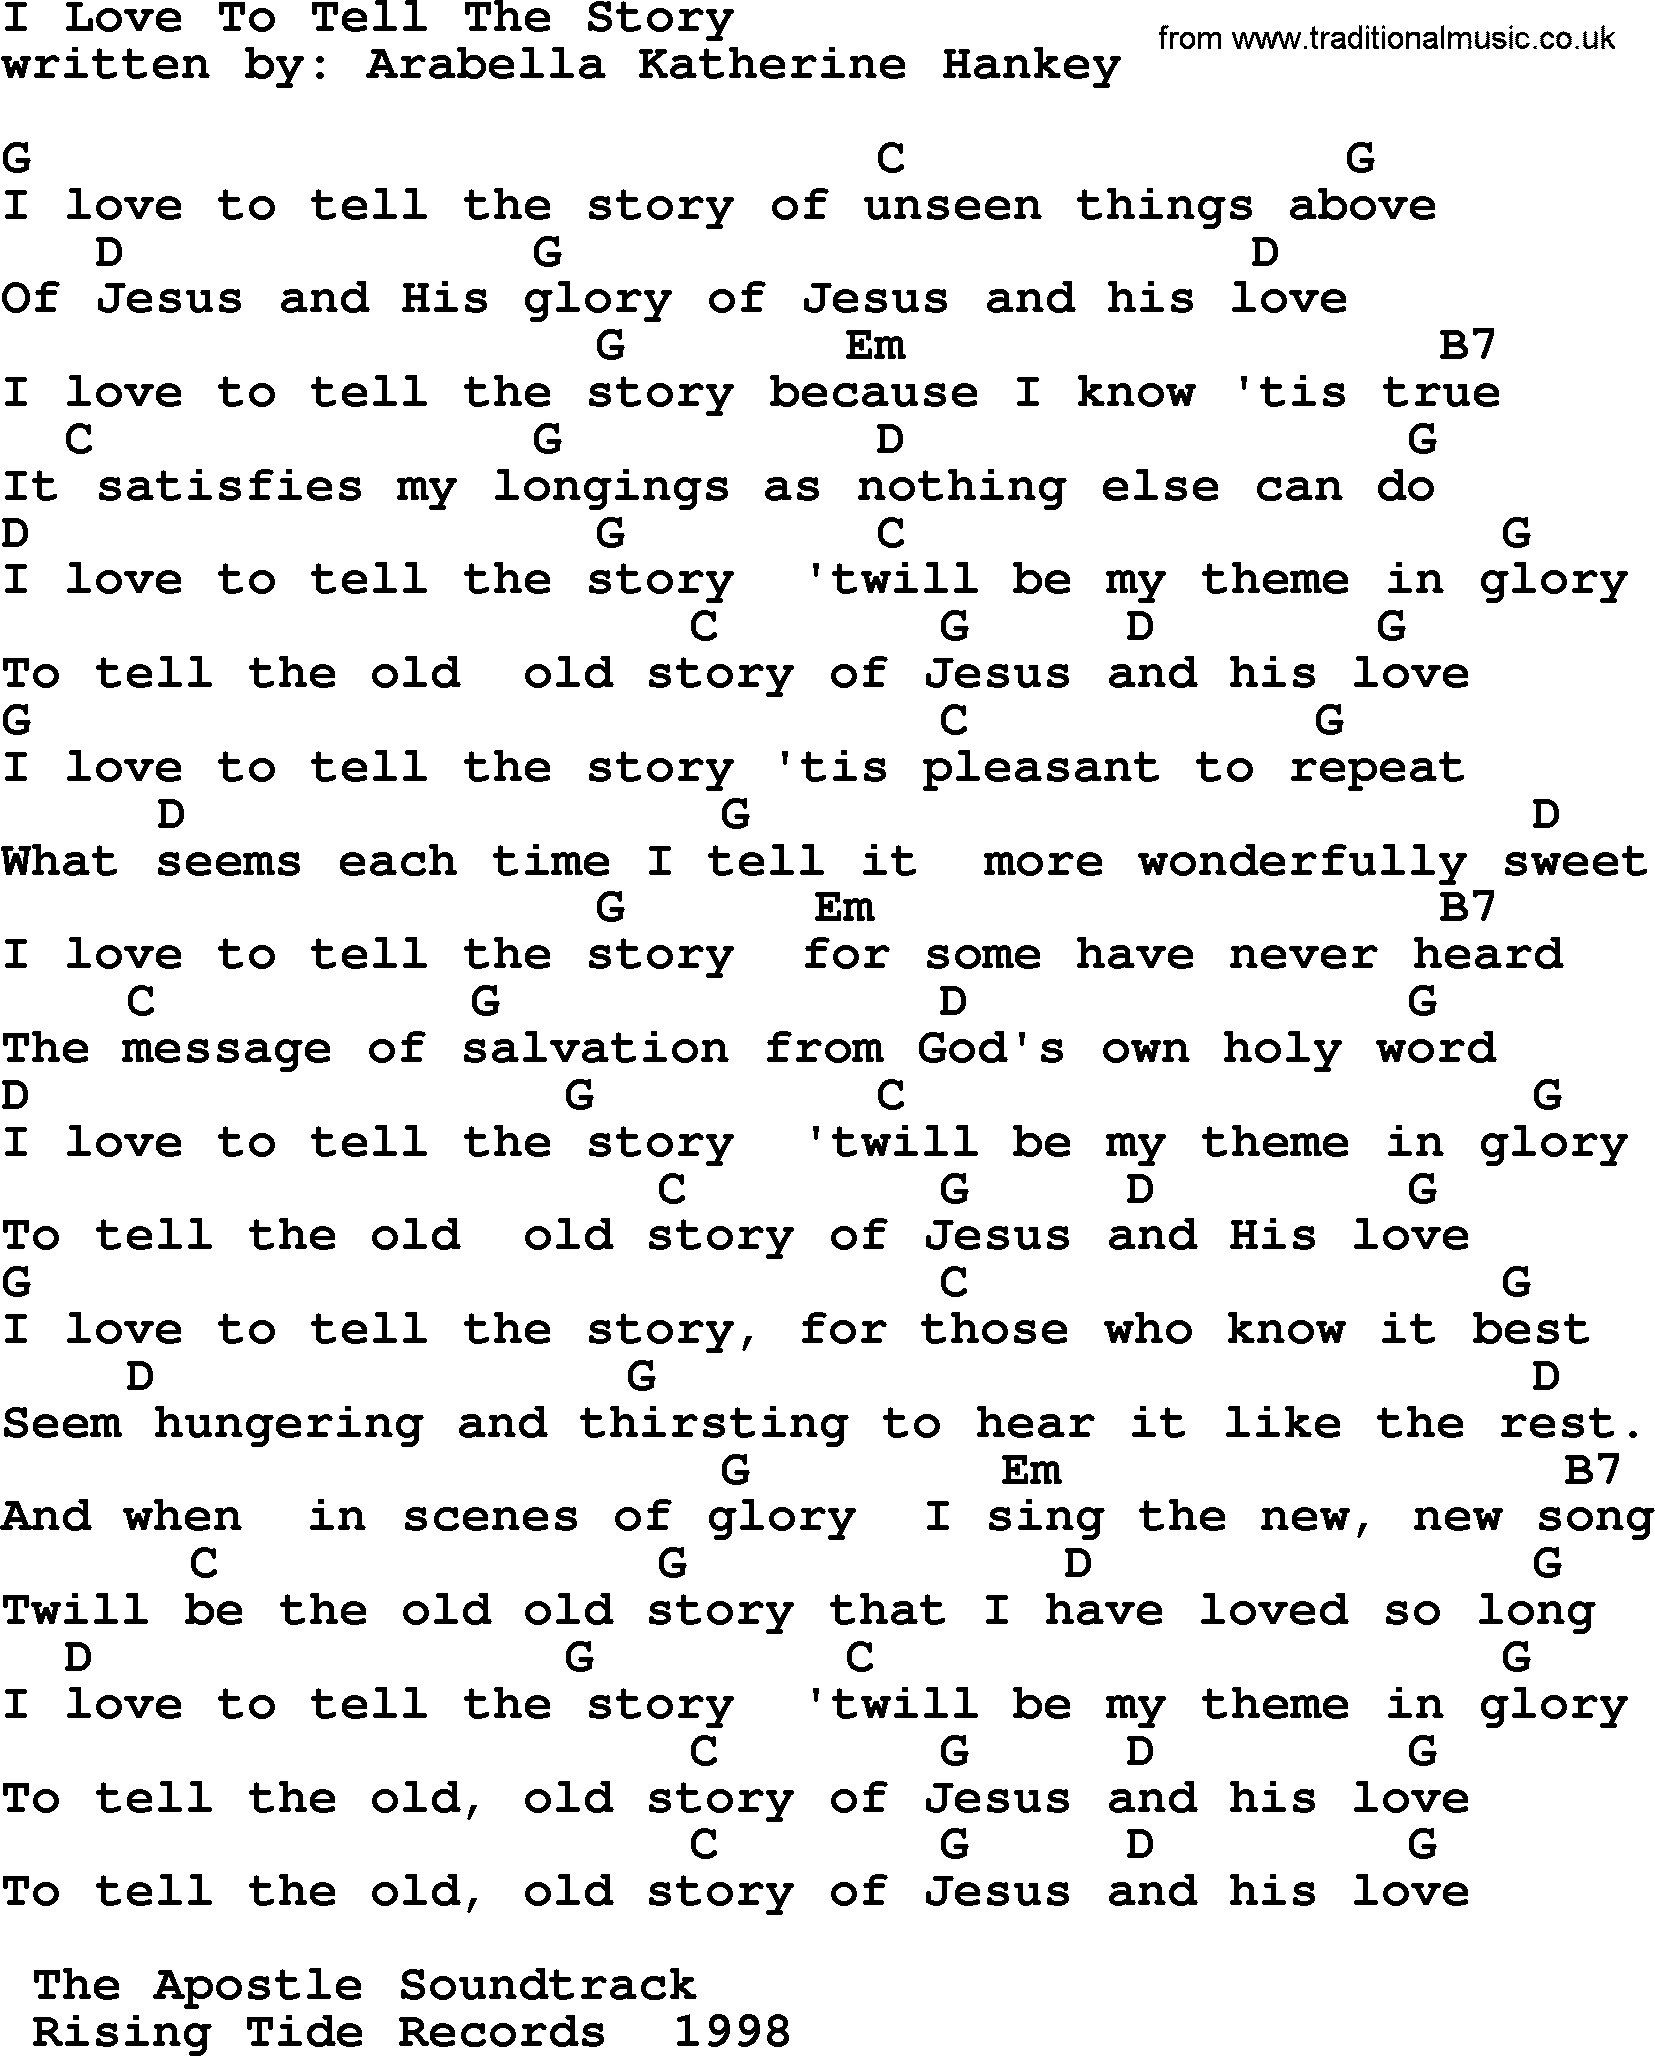 Love Story Chords Emmylou Harris Song I Love To Tell The Story Lyrics And Chords